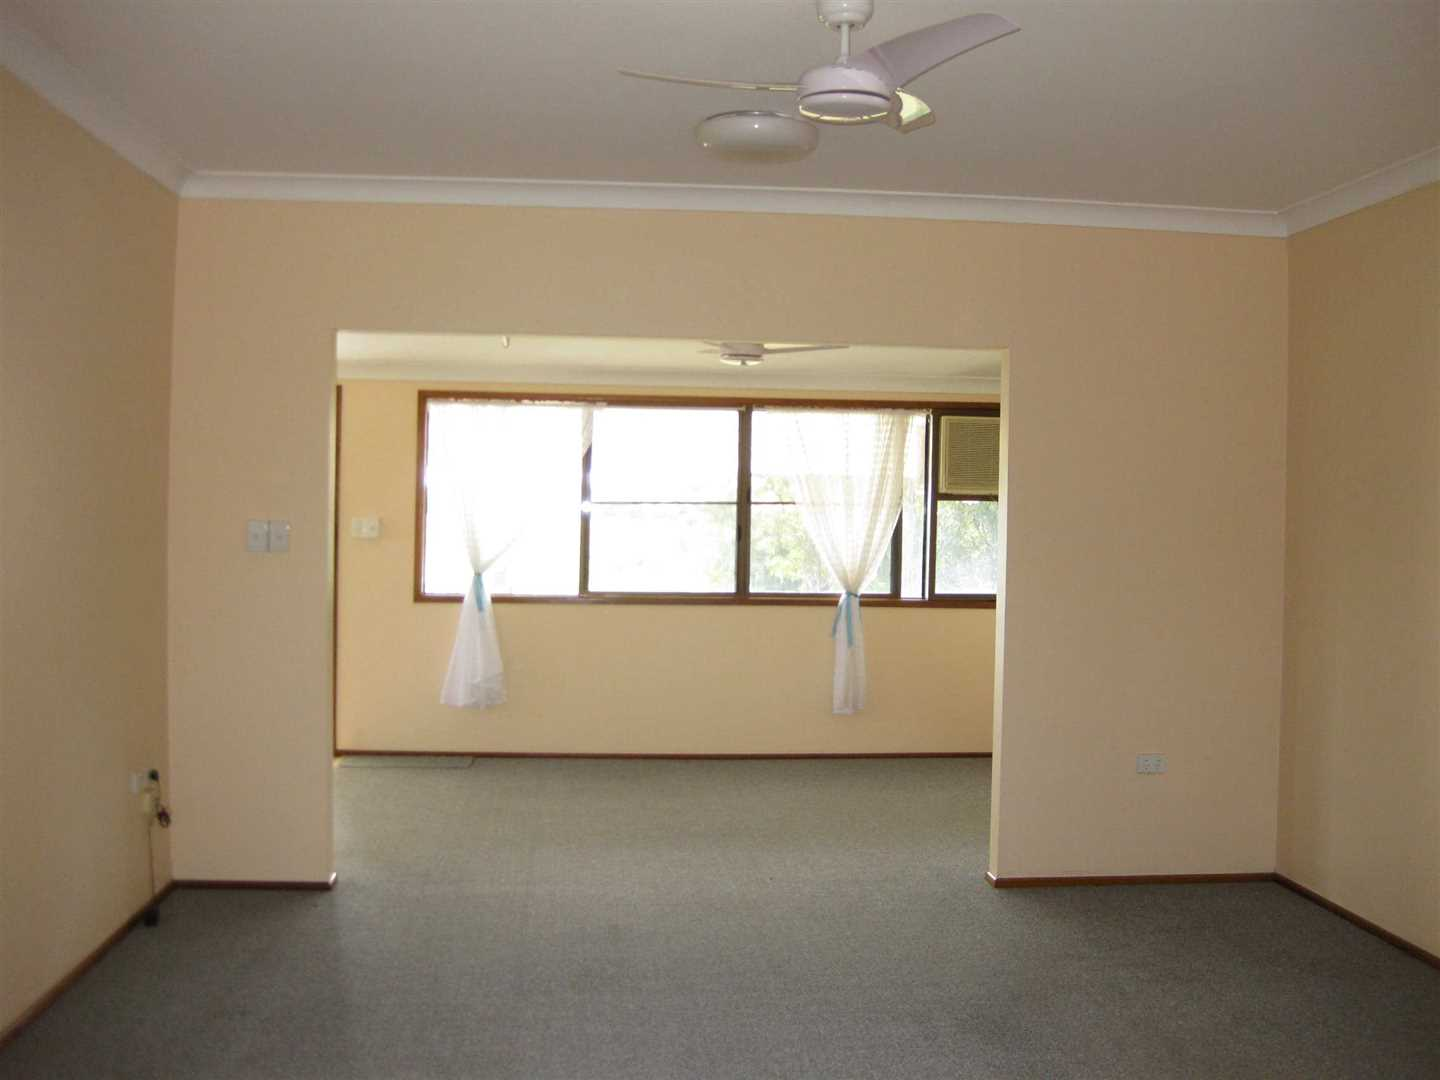 Inside view of part of home showing part of lounge and part of formal dining area behind